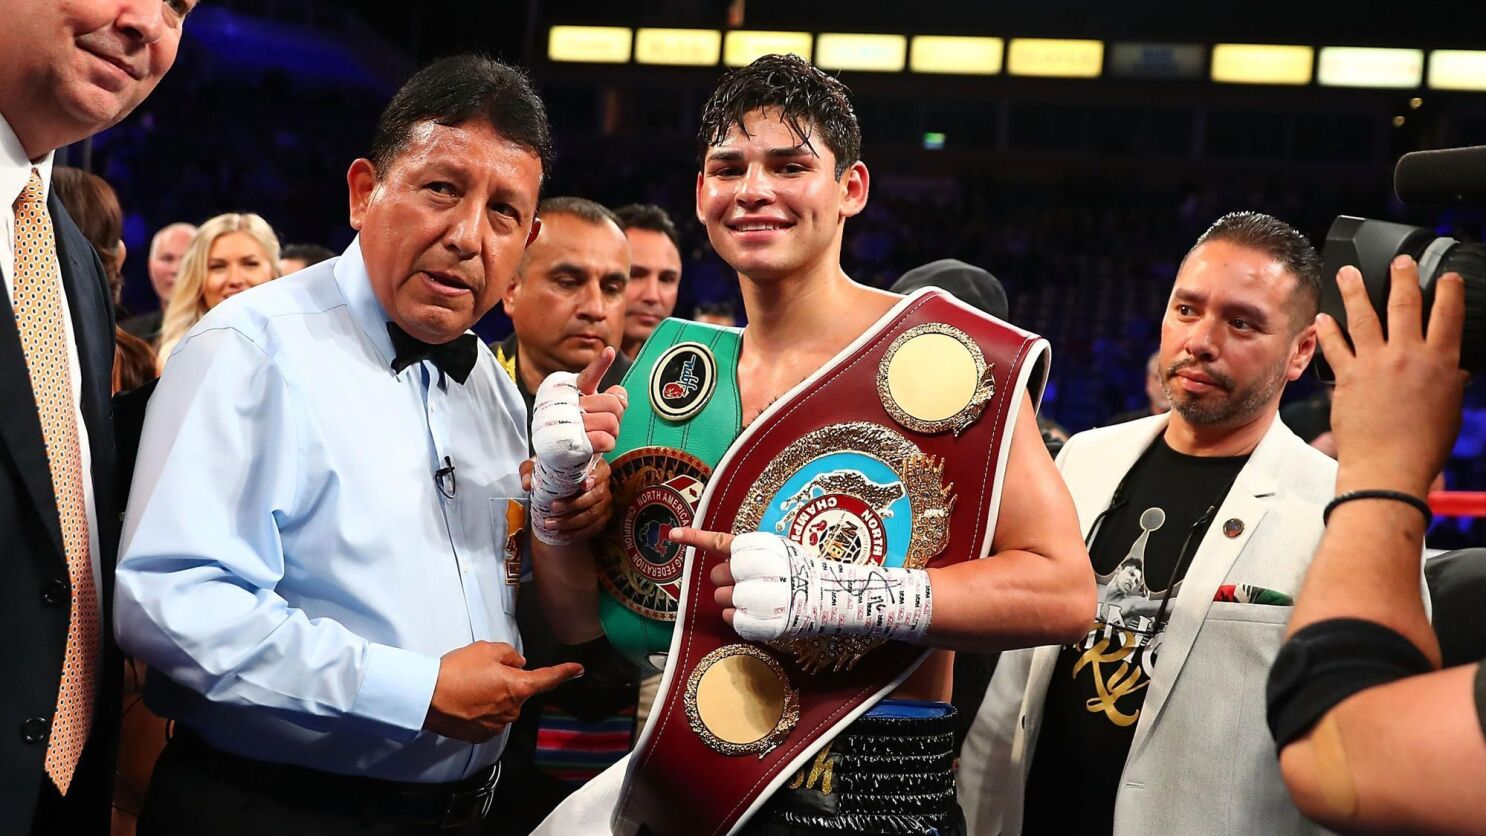 Ryan Garcia Faces Jose Lopez Fight Following Biggest Event Of His Young Life Los Angeles Times